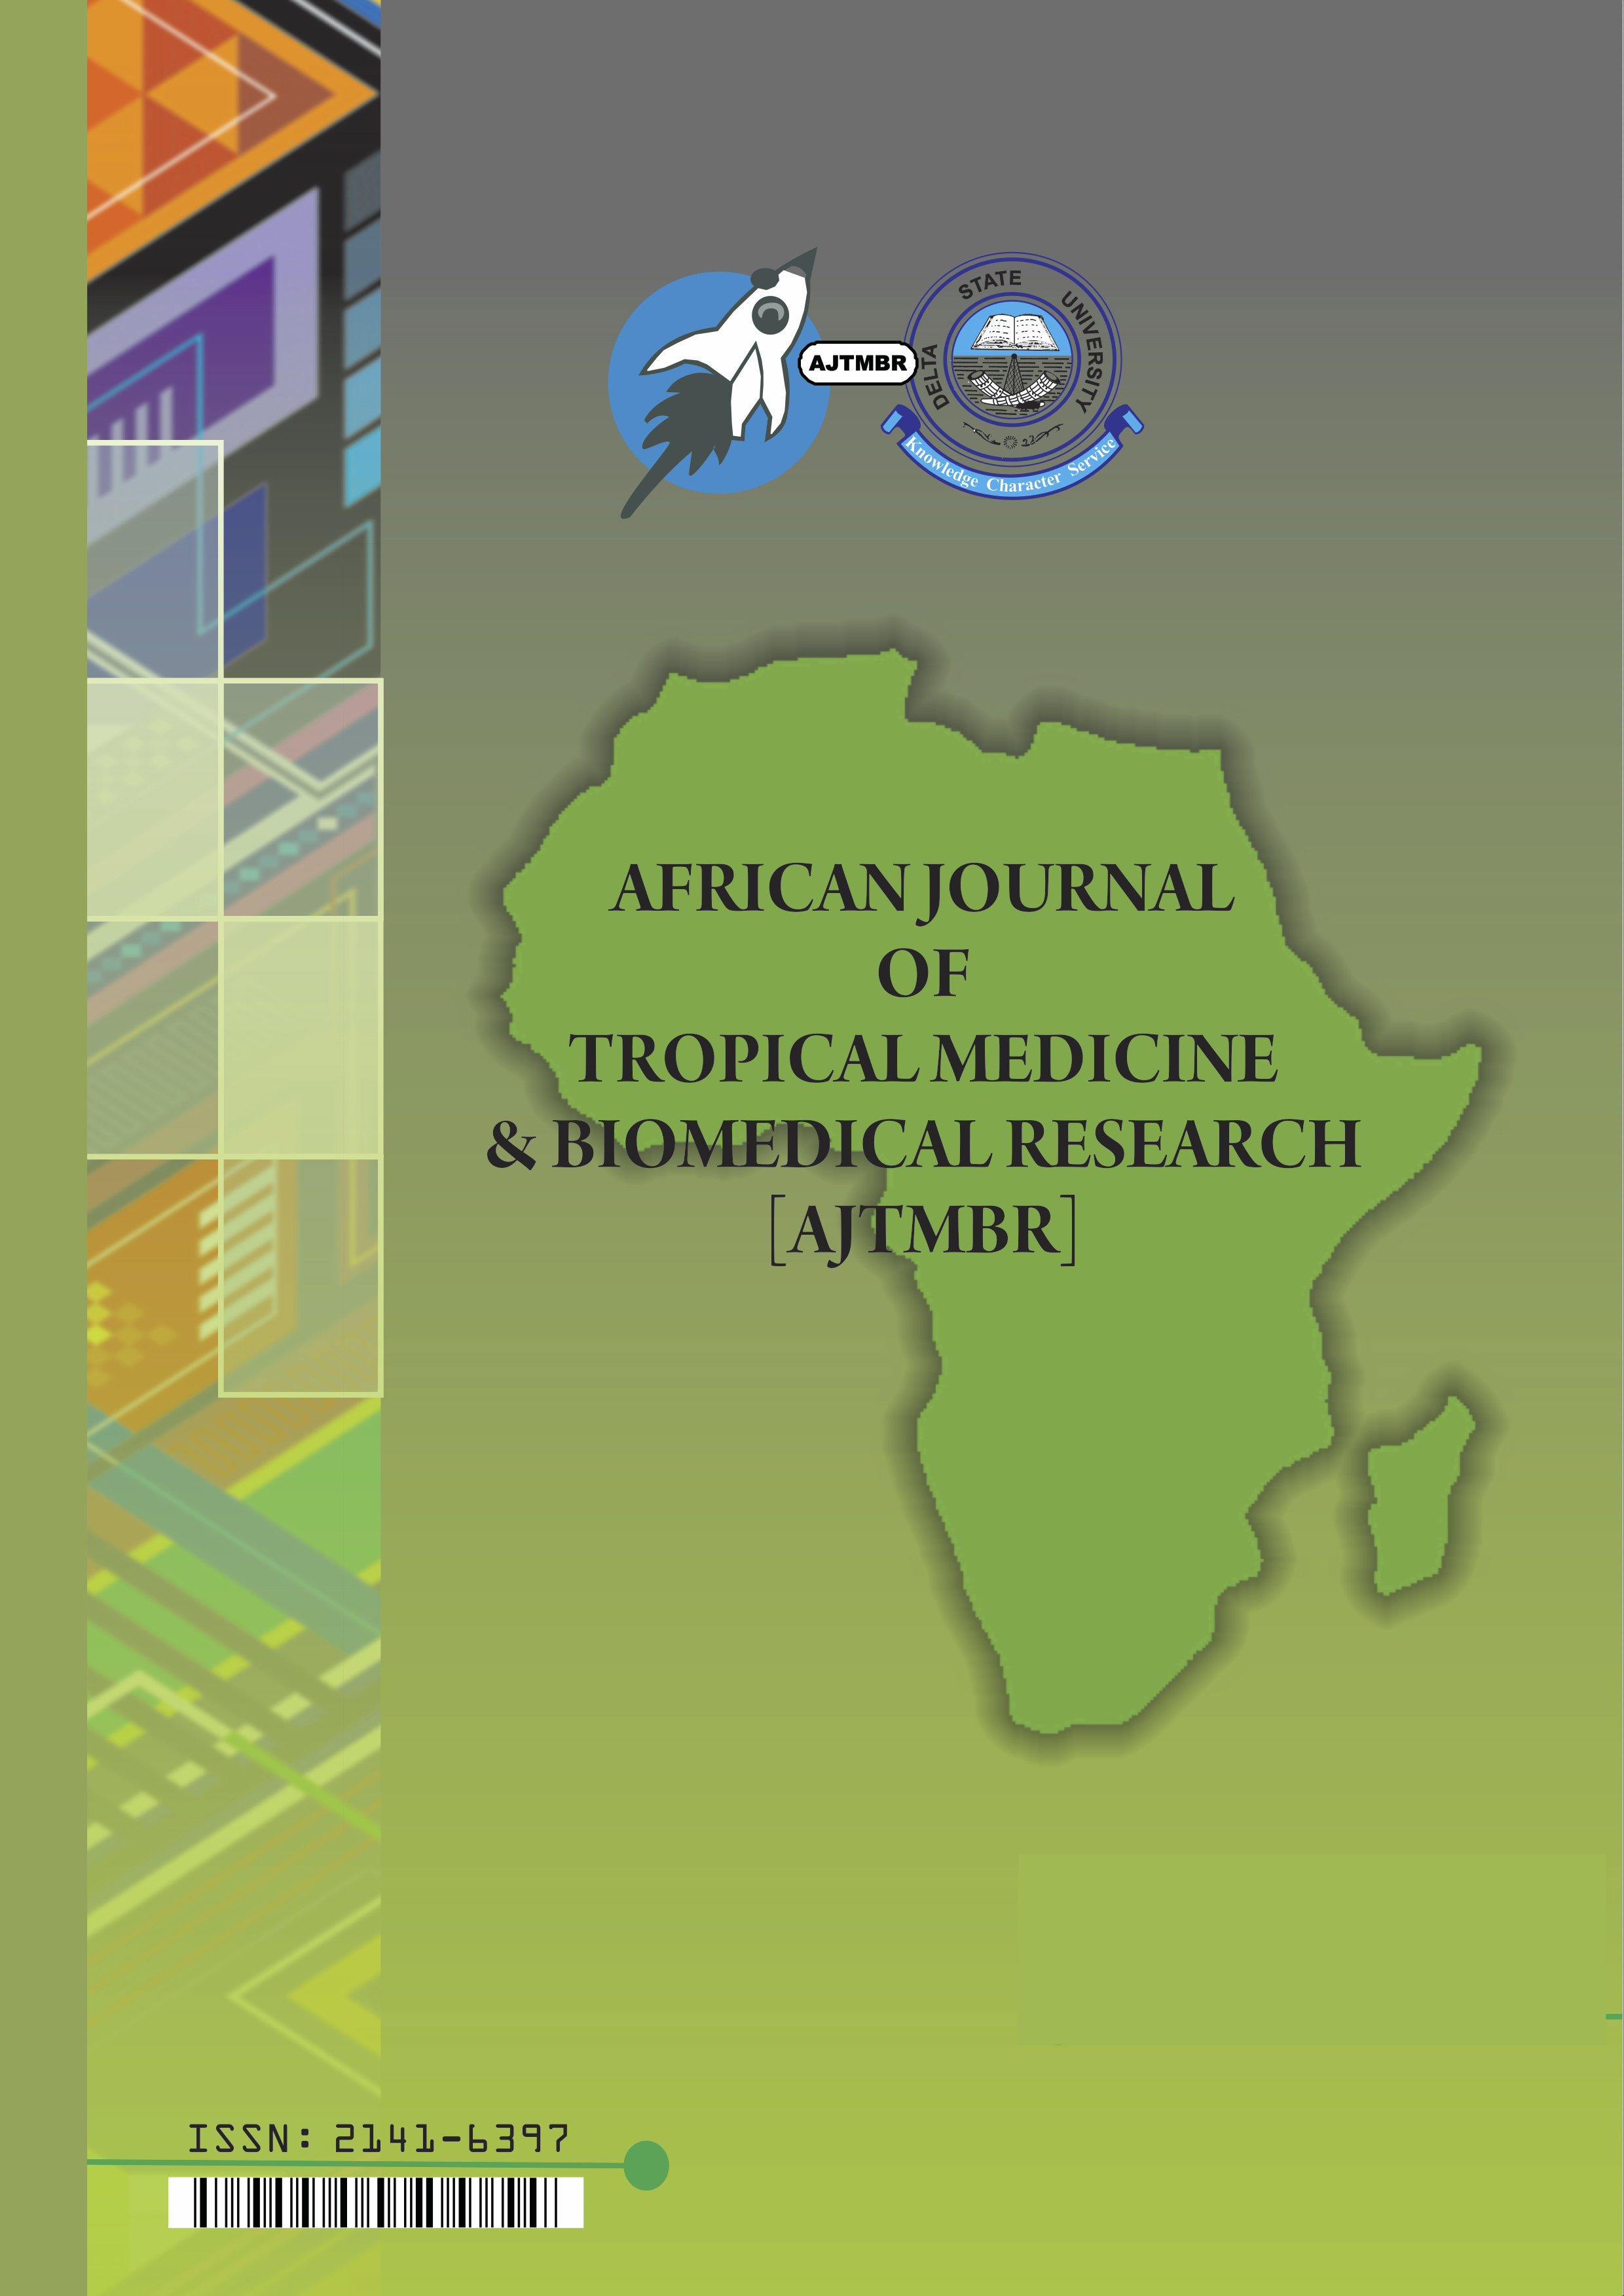 View Vol. 2 No. 2: African Journal of Tropical Medicine and Biomedical Research; September 2015